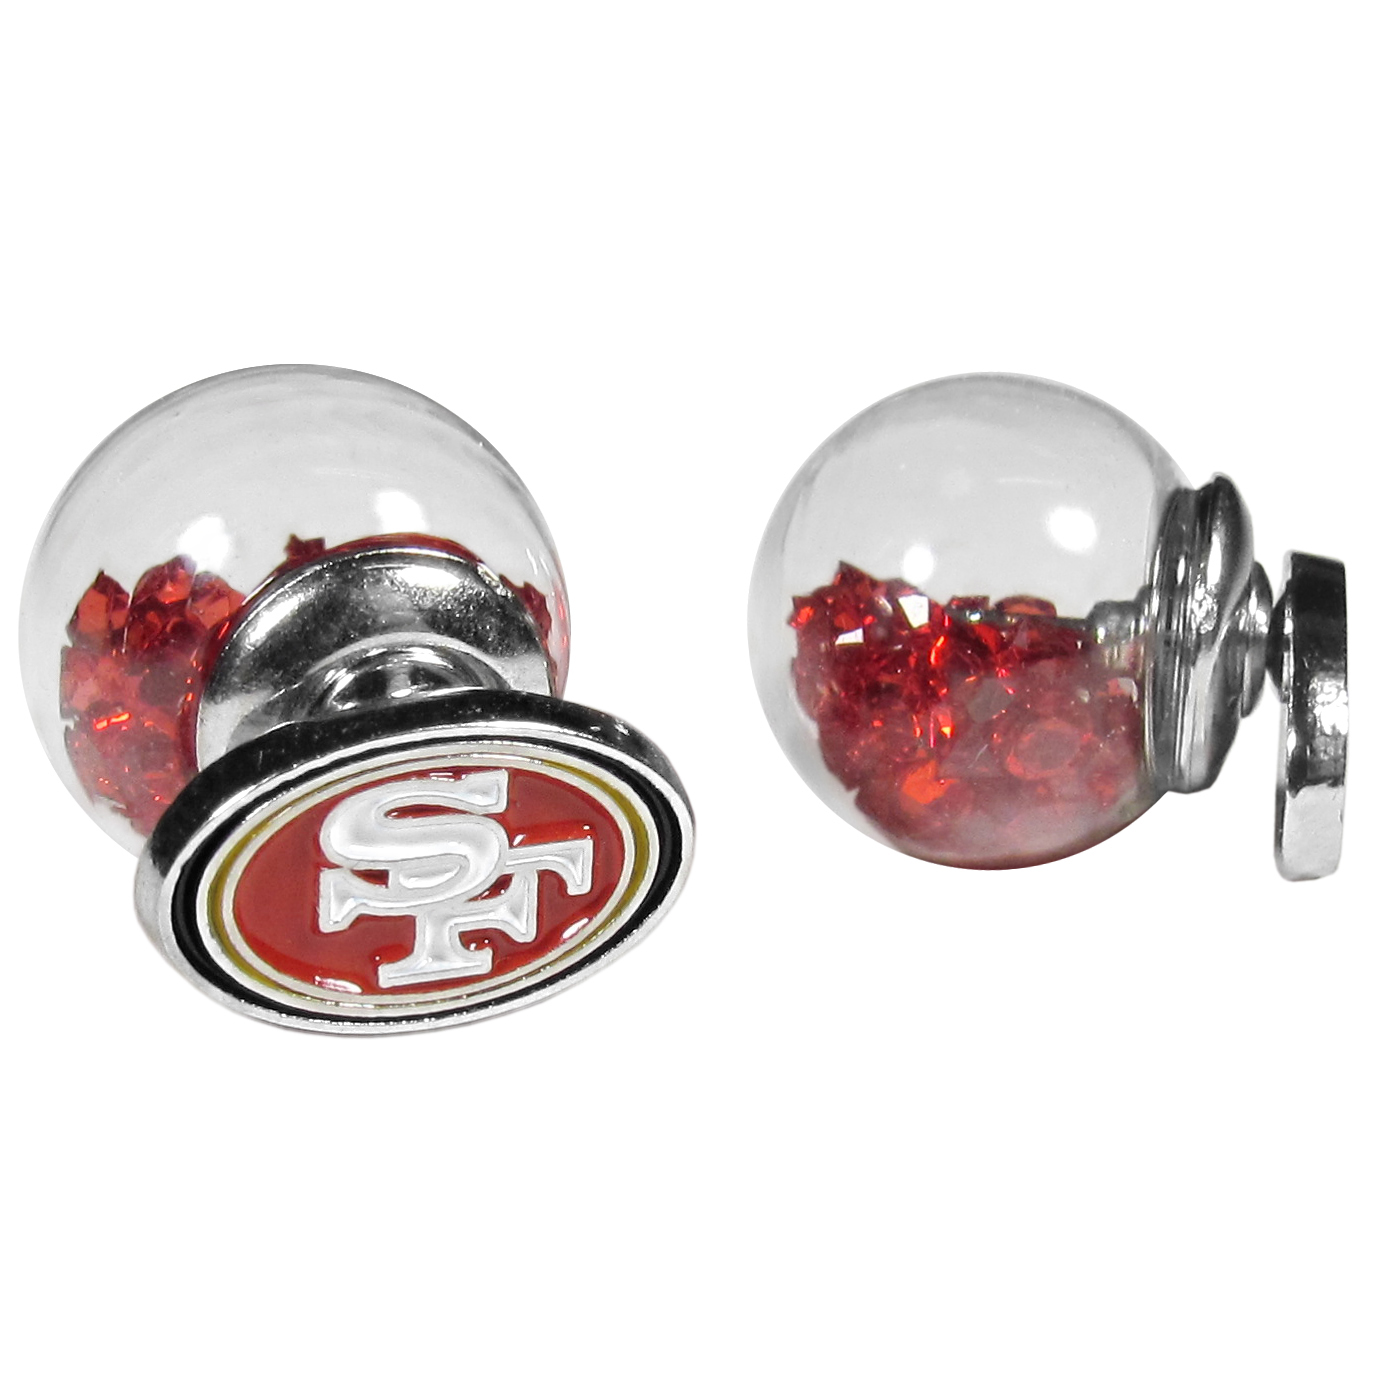 San Francisco 49ers Front/Back Earrings - Get in on one of the most popular trends in jewelry, front and back earrings! This must-have style is all of over the red carpets and we taken this contemporary look and paired it with your love of the San Francisco 49ers! The front of the earring is a sporty team logo and the back of these eye-catching earrings is a glass ball filled with colored crystal beads. This piece is perfect for a fashion-forward fan, with bold taste and trend-setting style.